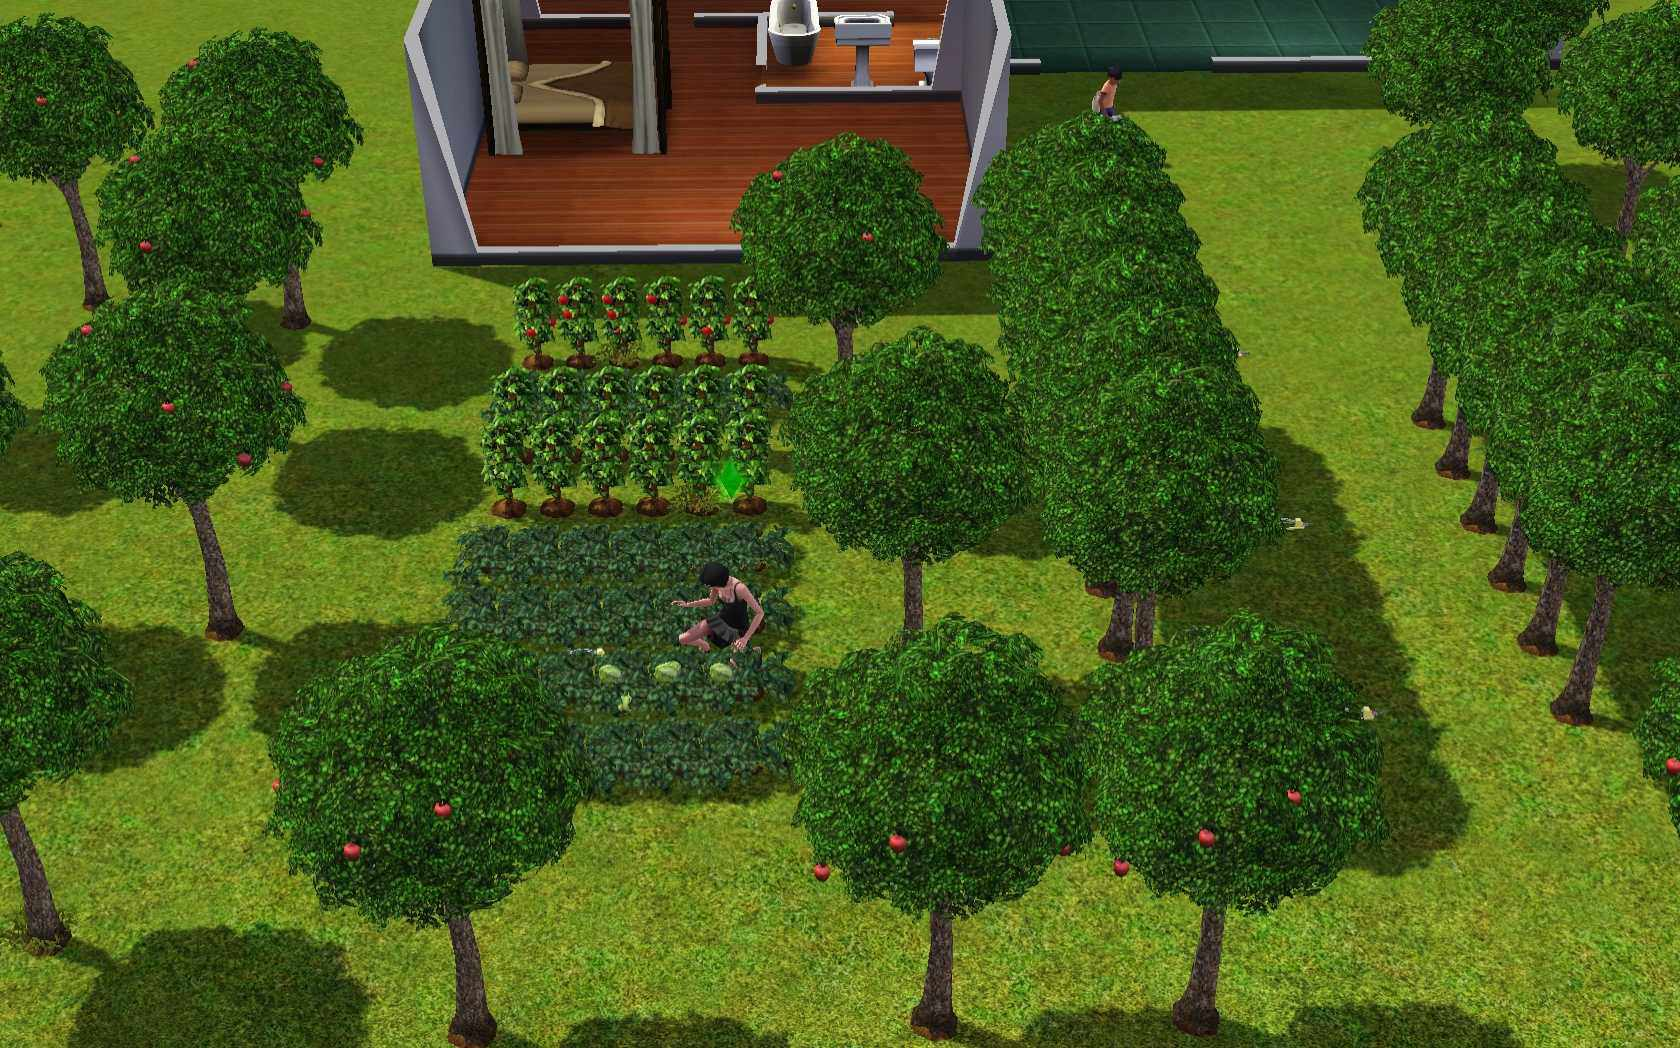 When You Learn To Garden Properly In The Sims 3, You Can Make Farms That